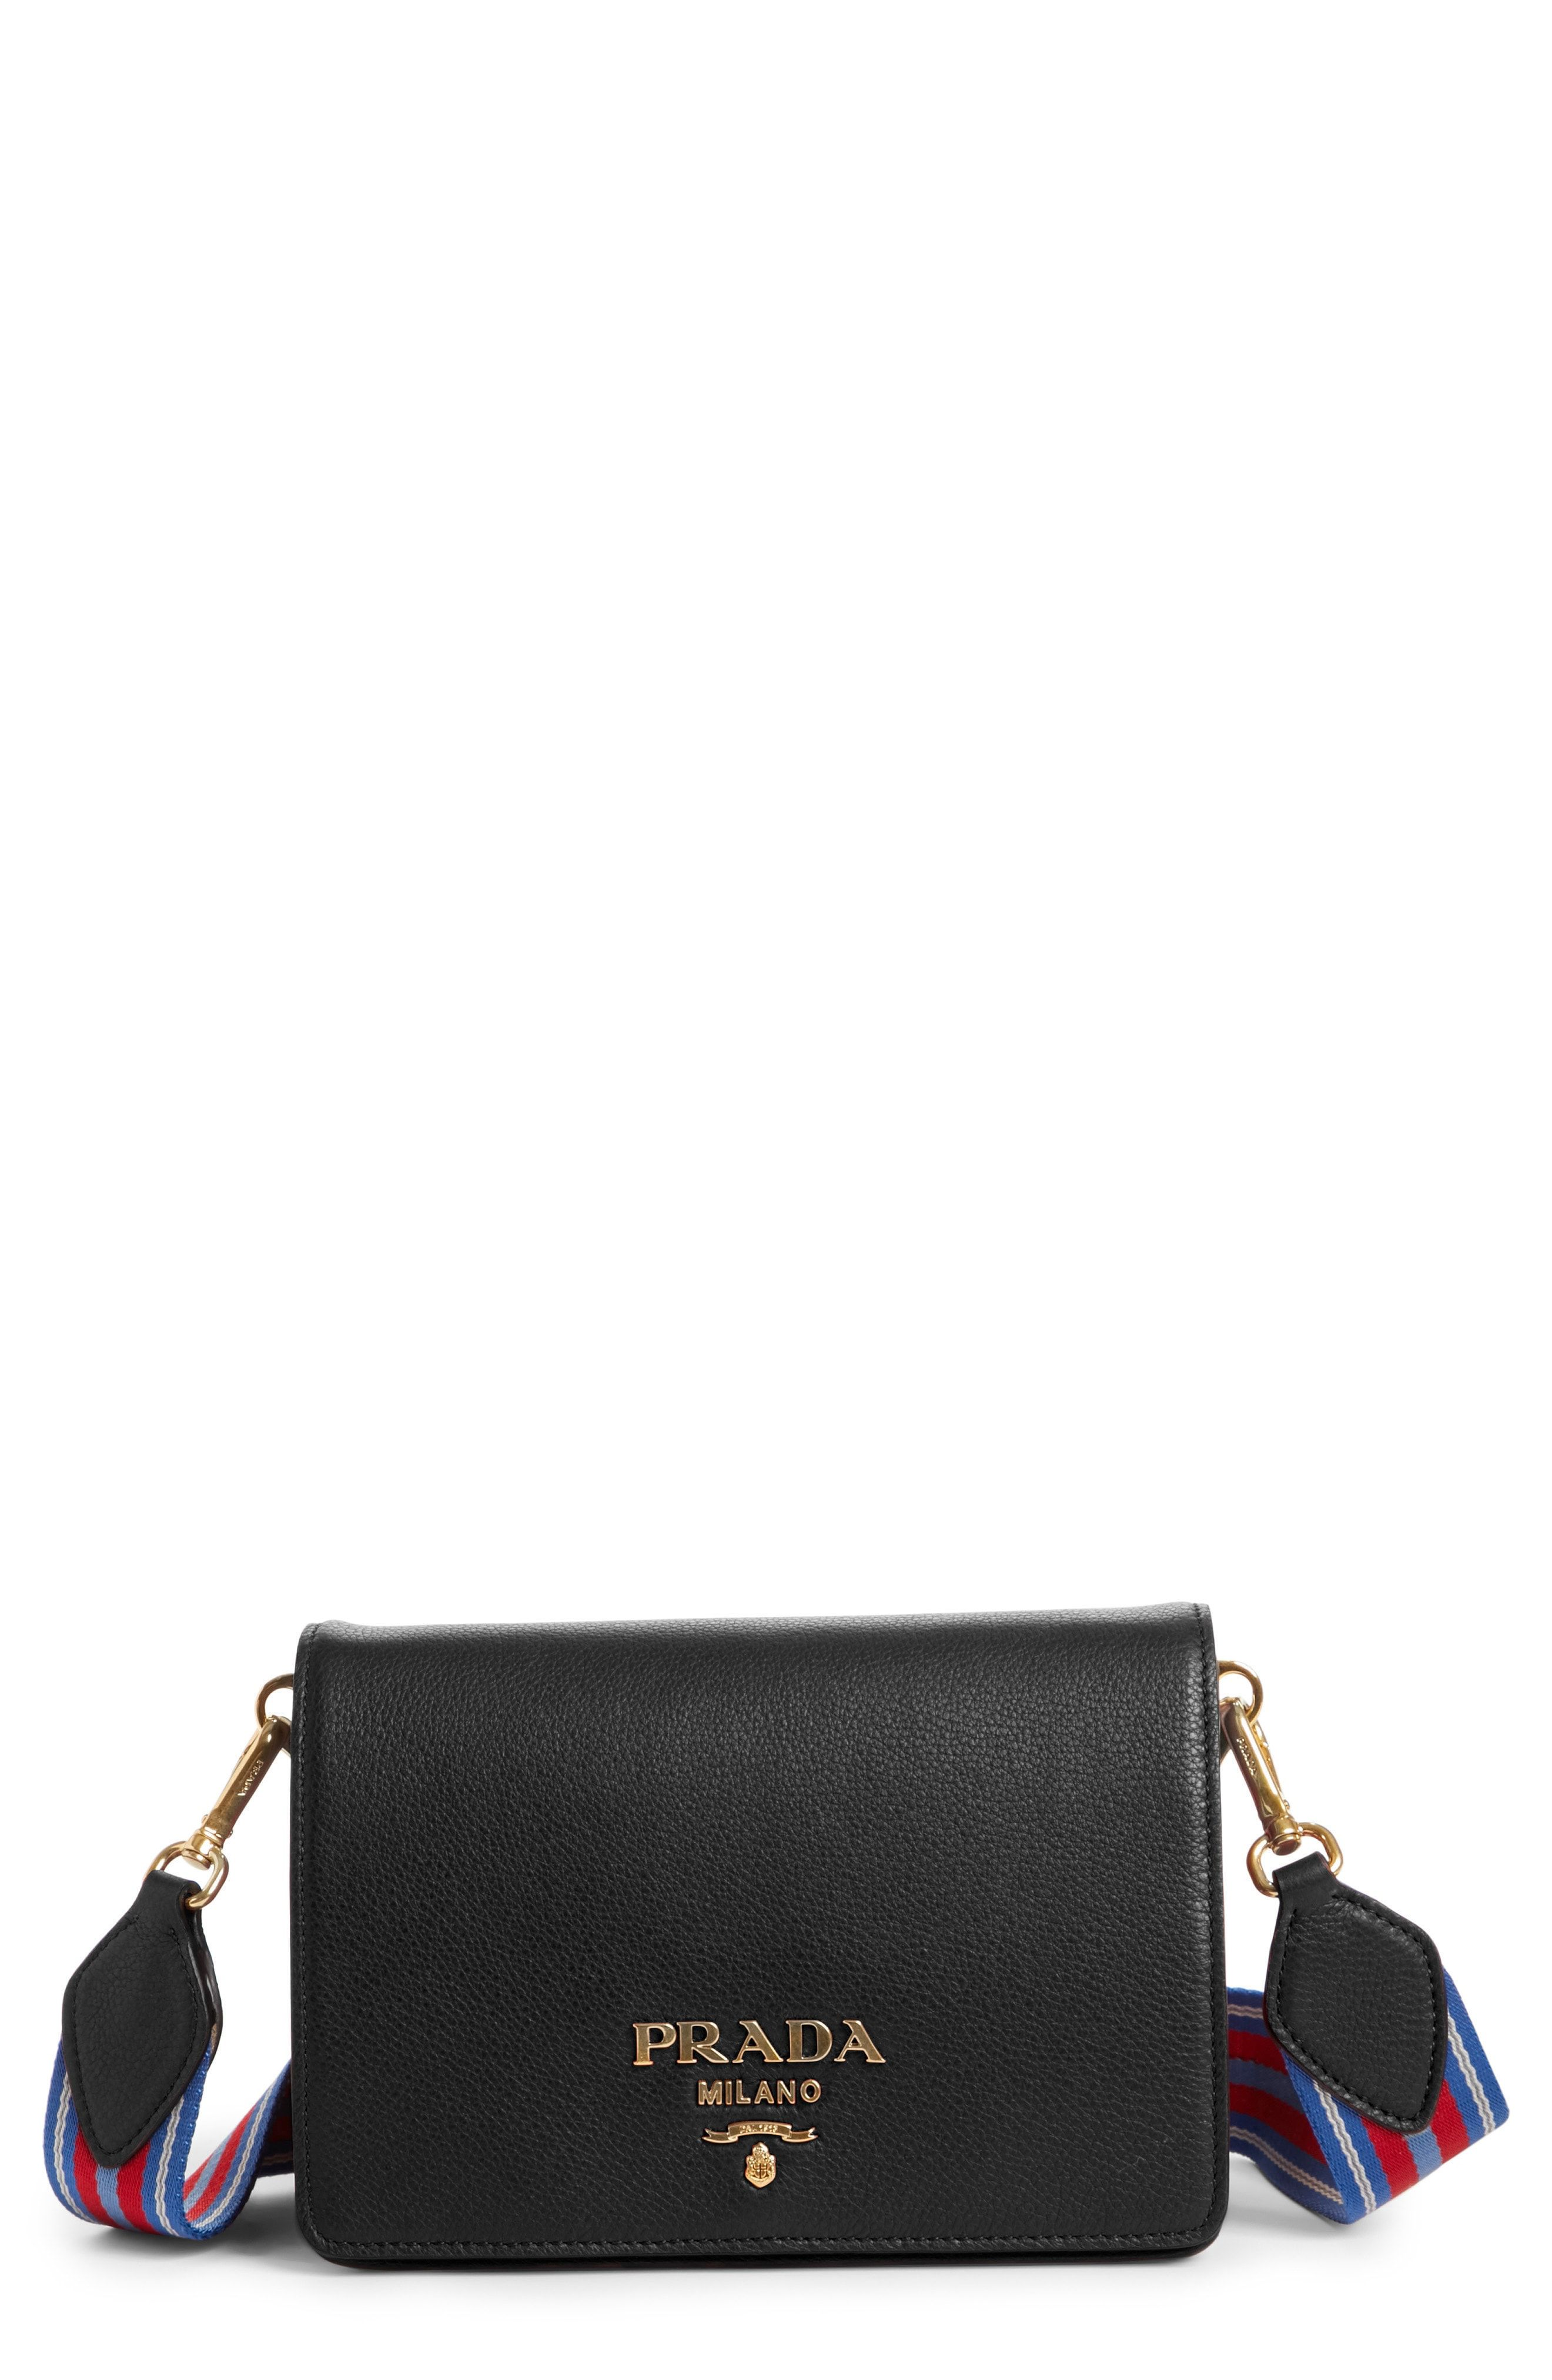 09b005959eaf Prada Vitello Daino Double Compartment Leather Shoulder Bag available at  #Nordstrom